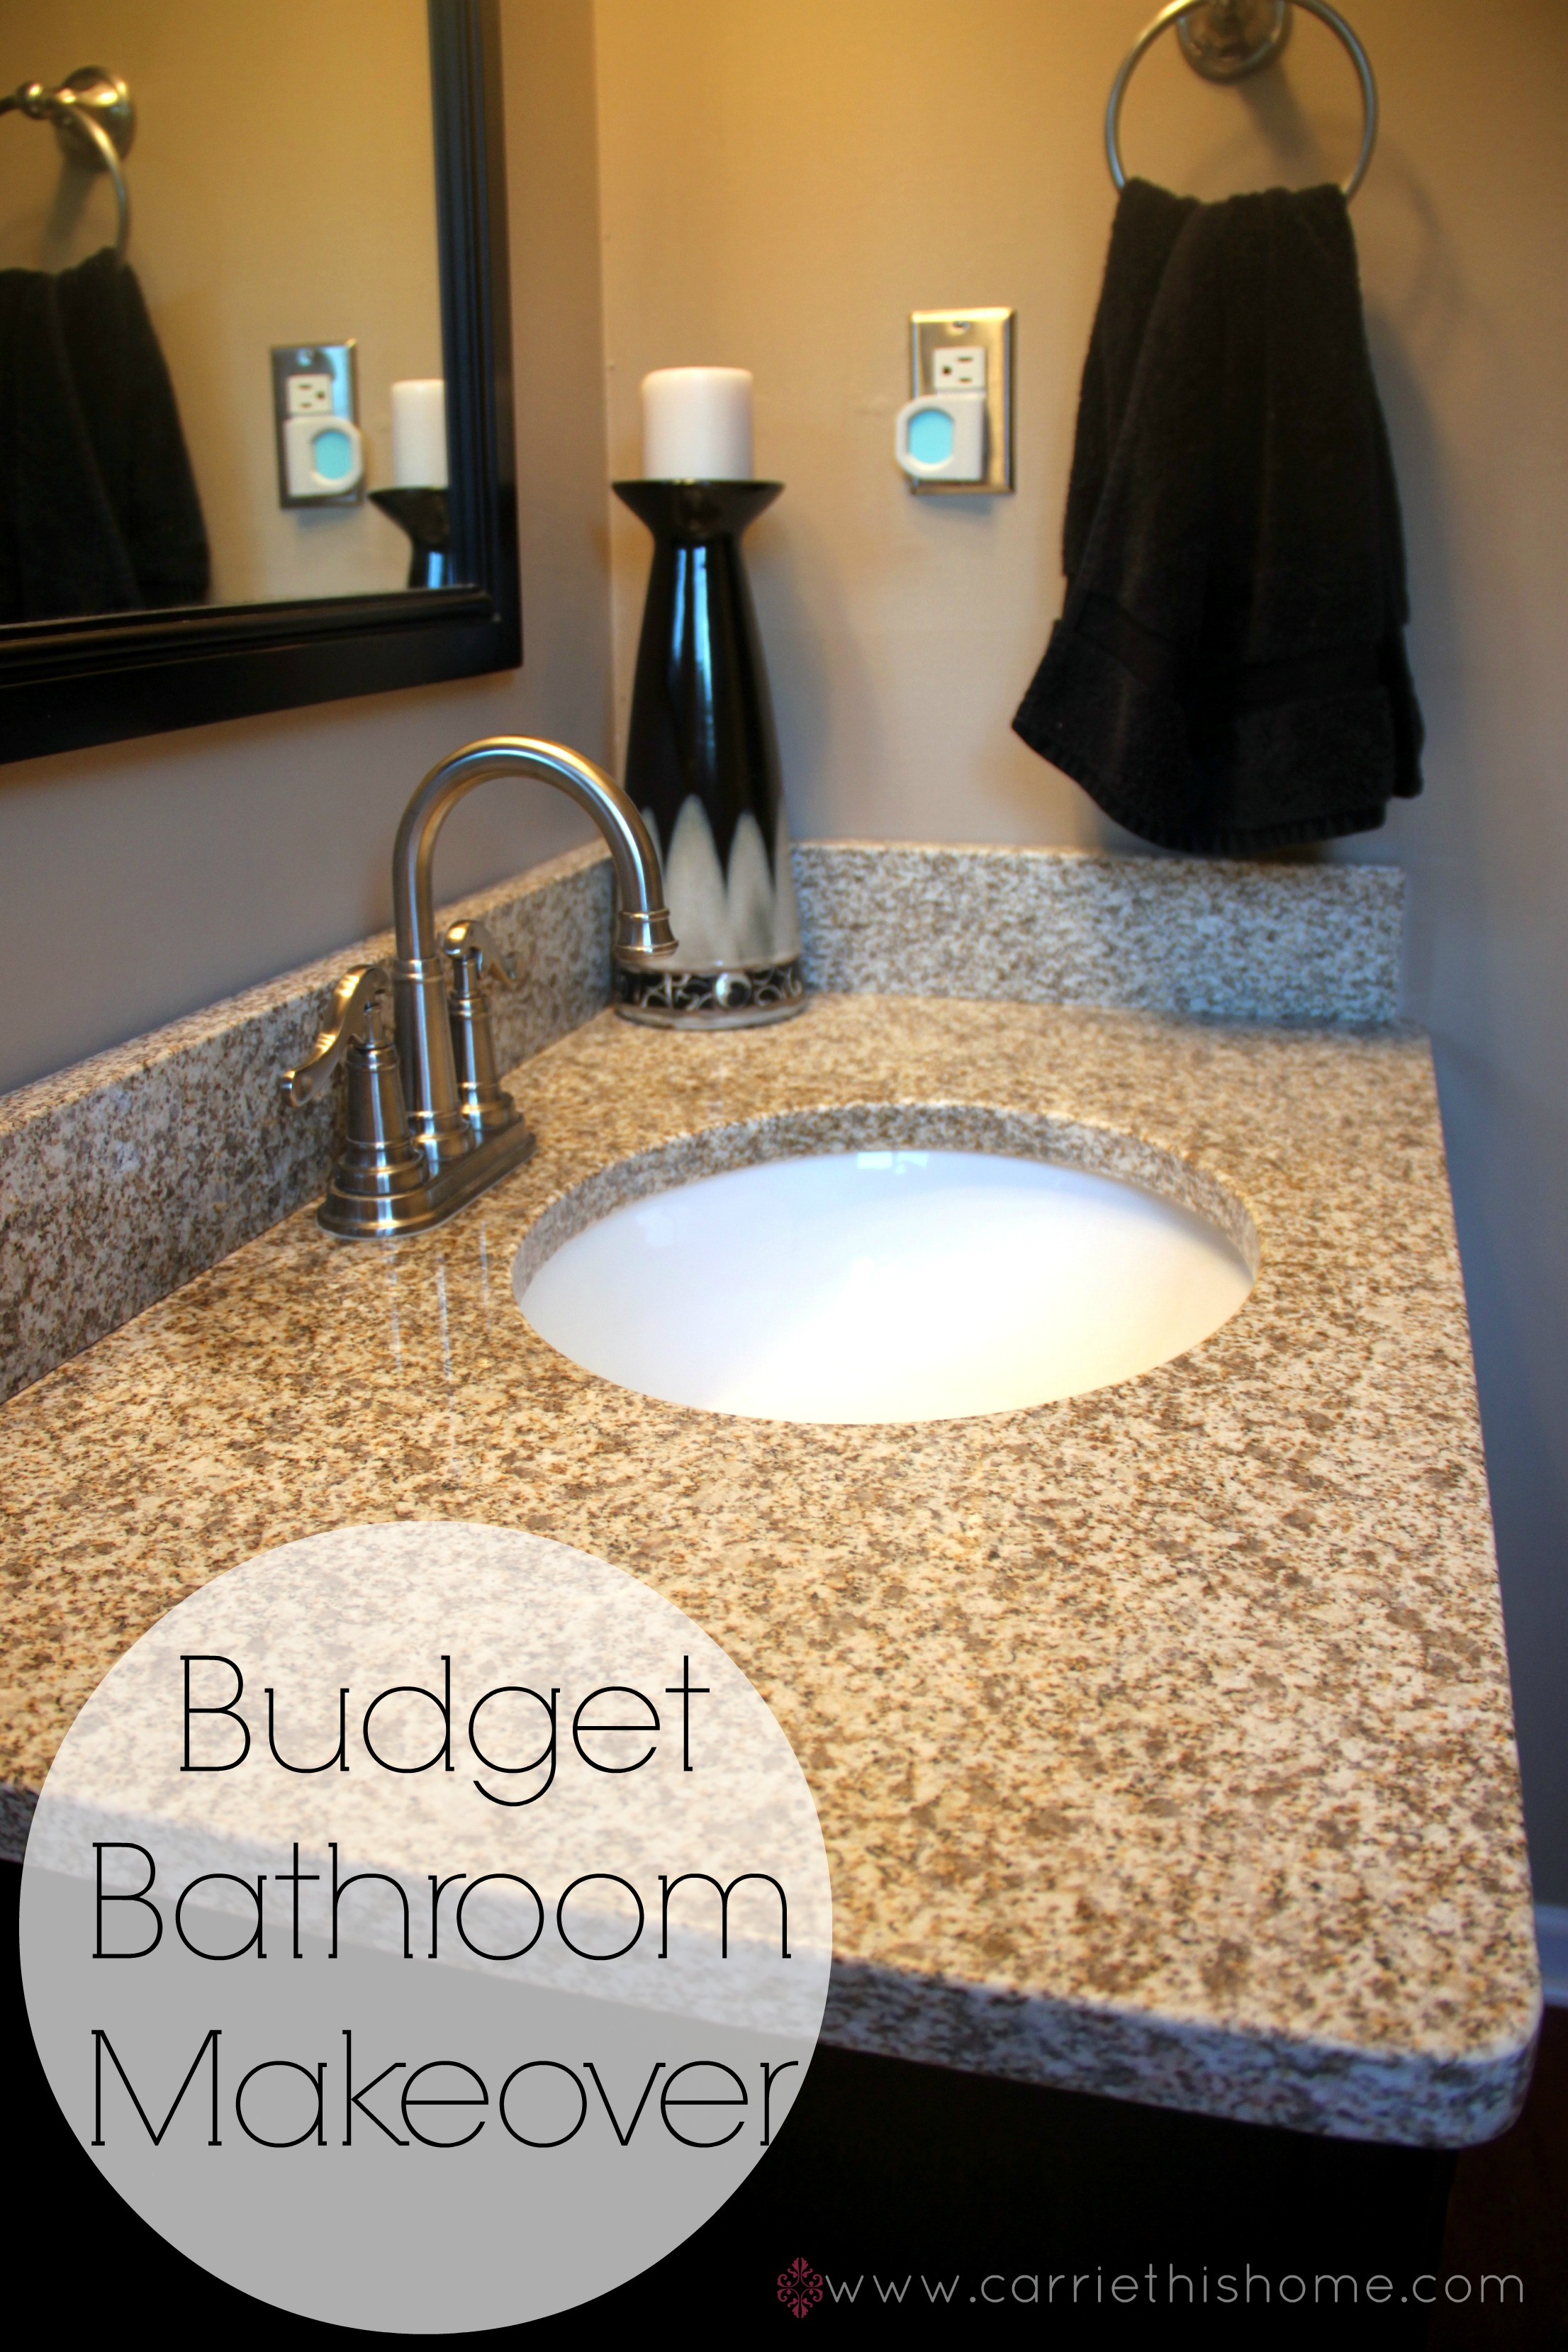 bathrooms house updates costs condo bathroom ideas cost on renovation tiny for fancy upgrade makeover design budget with improvements adorable decor remodel small